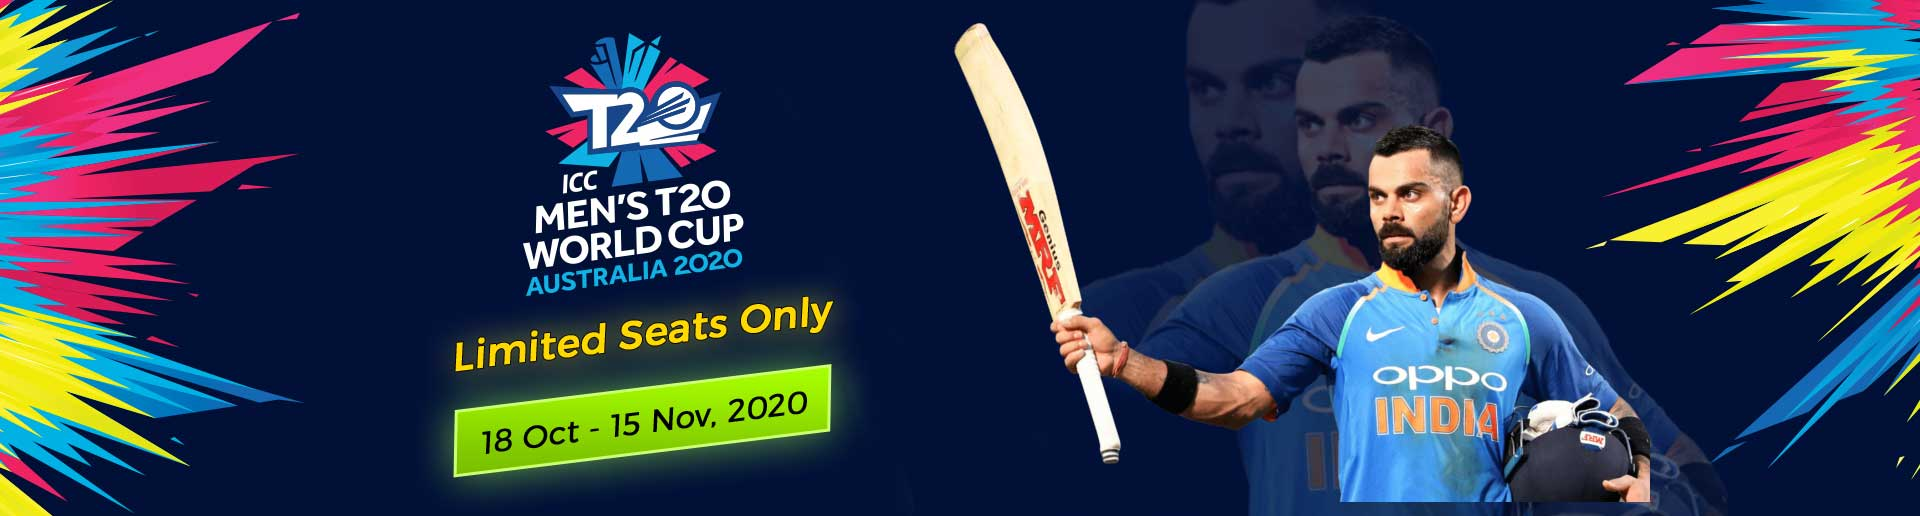 t20-world-cup-australia-2020-packages2